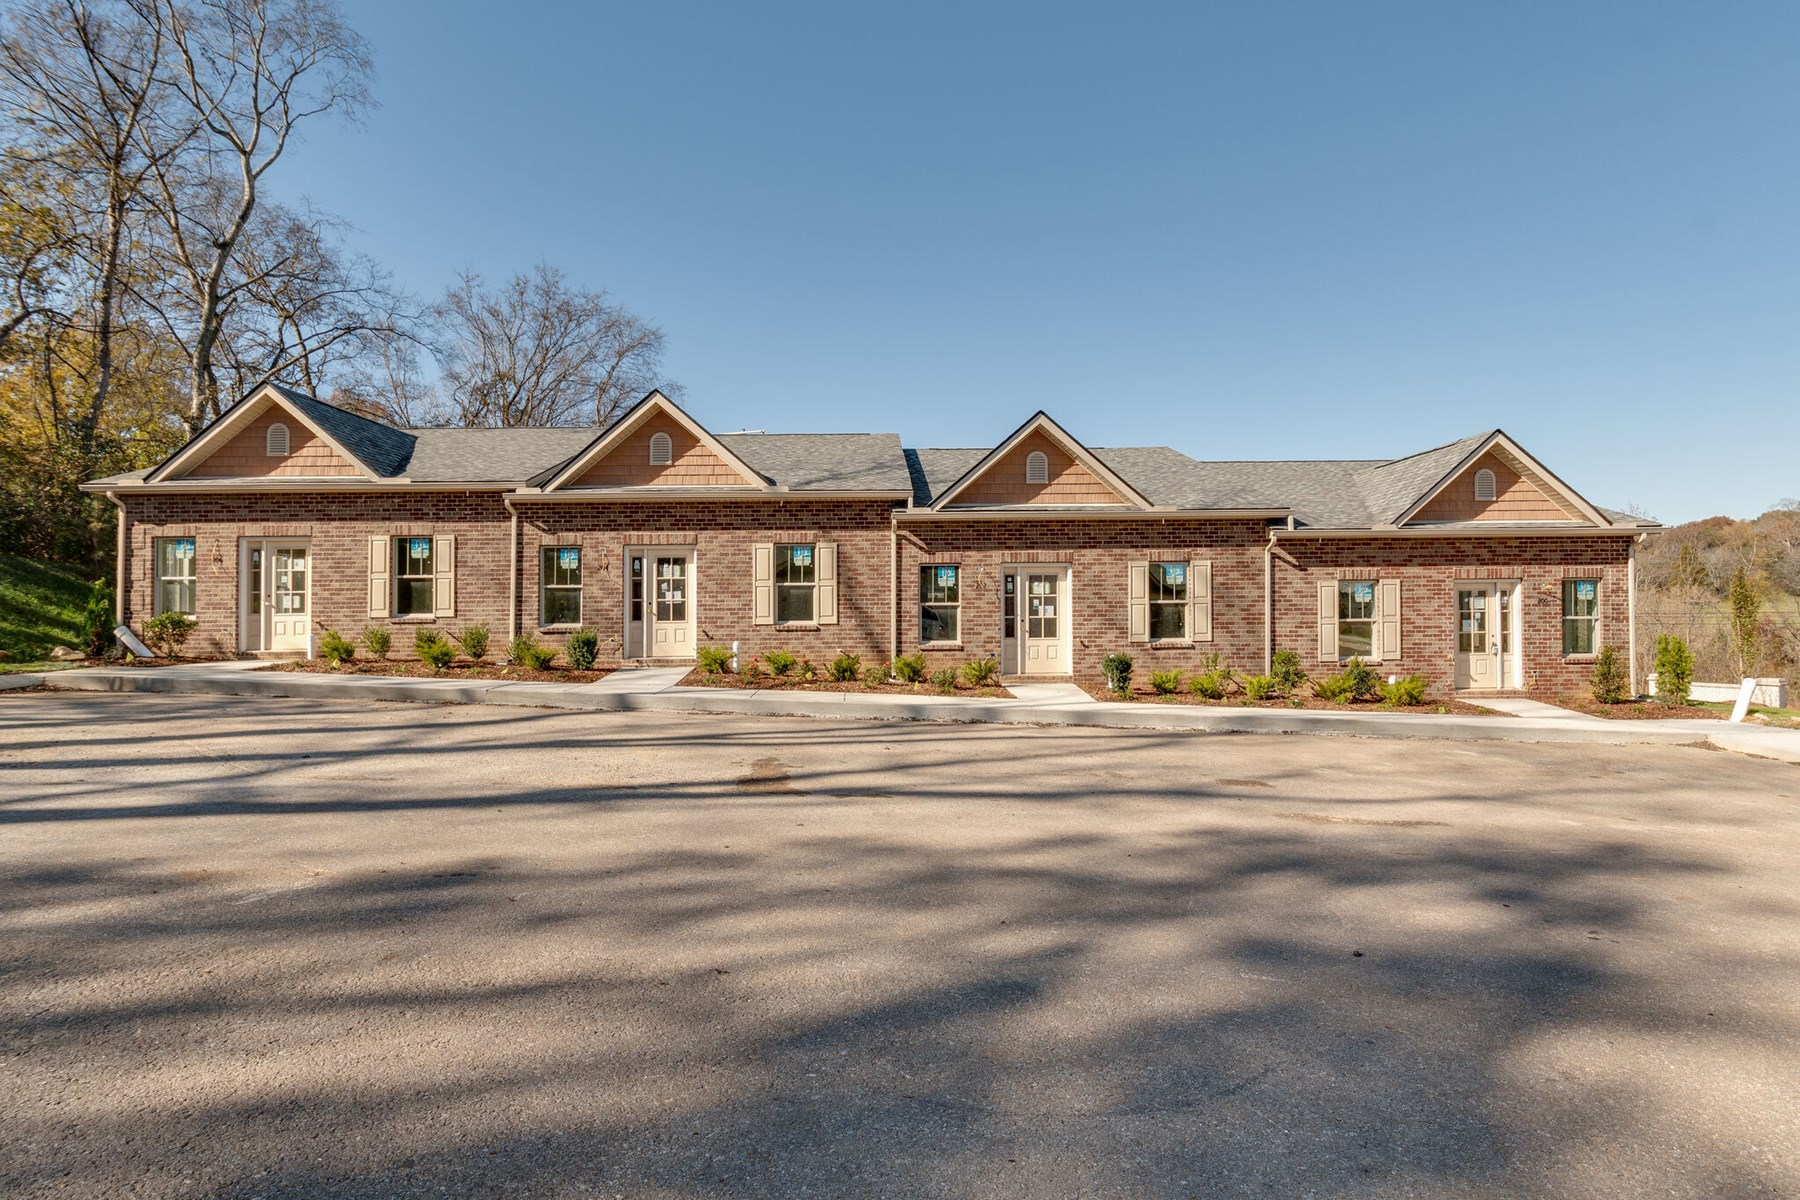 Zero-Lot Line Homes in Town for Sale in Columbia, Tennessee